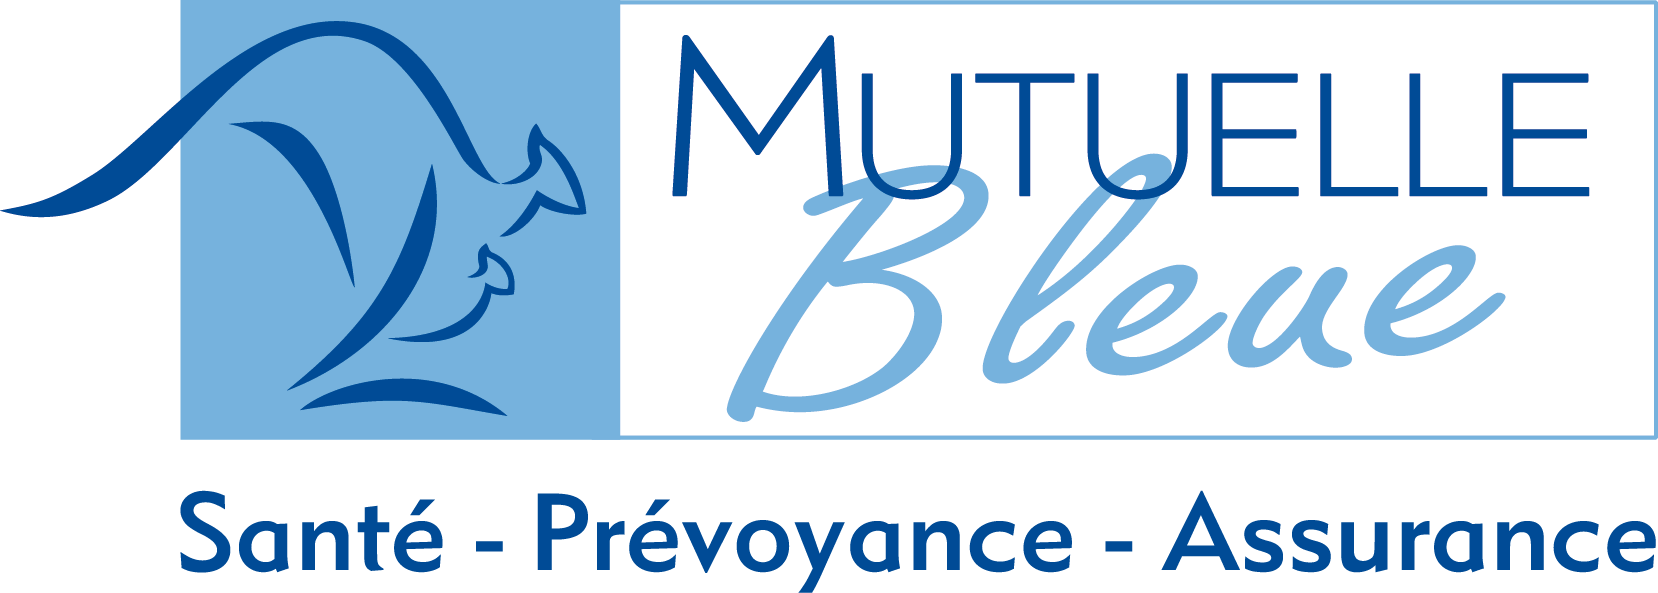 affinity mutuelle bleue